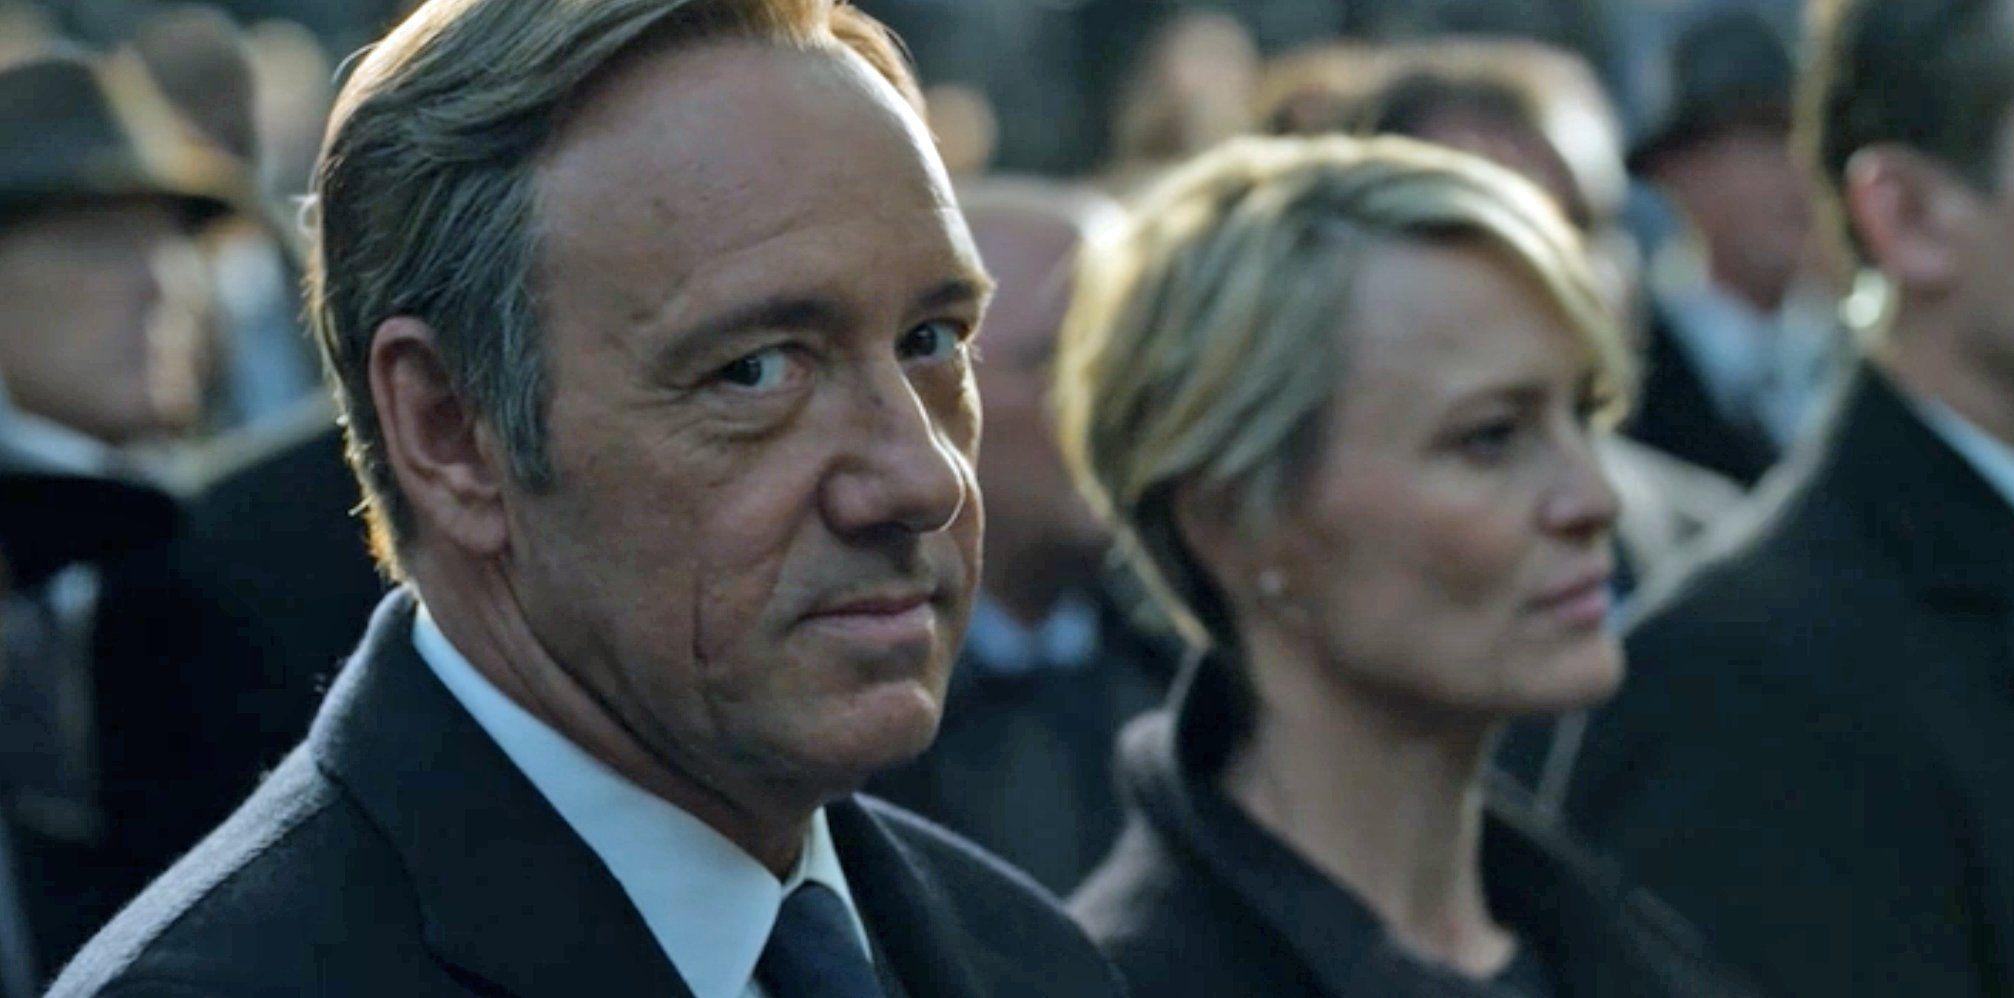 House of Cards wallpapers – wallpapers free download